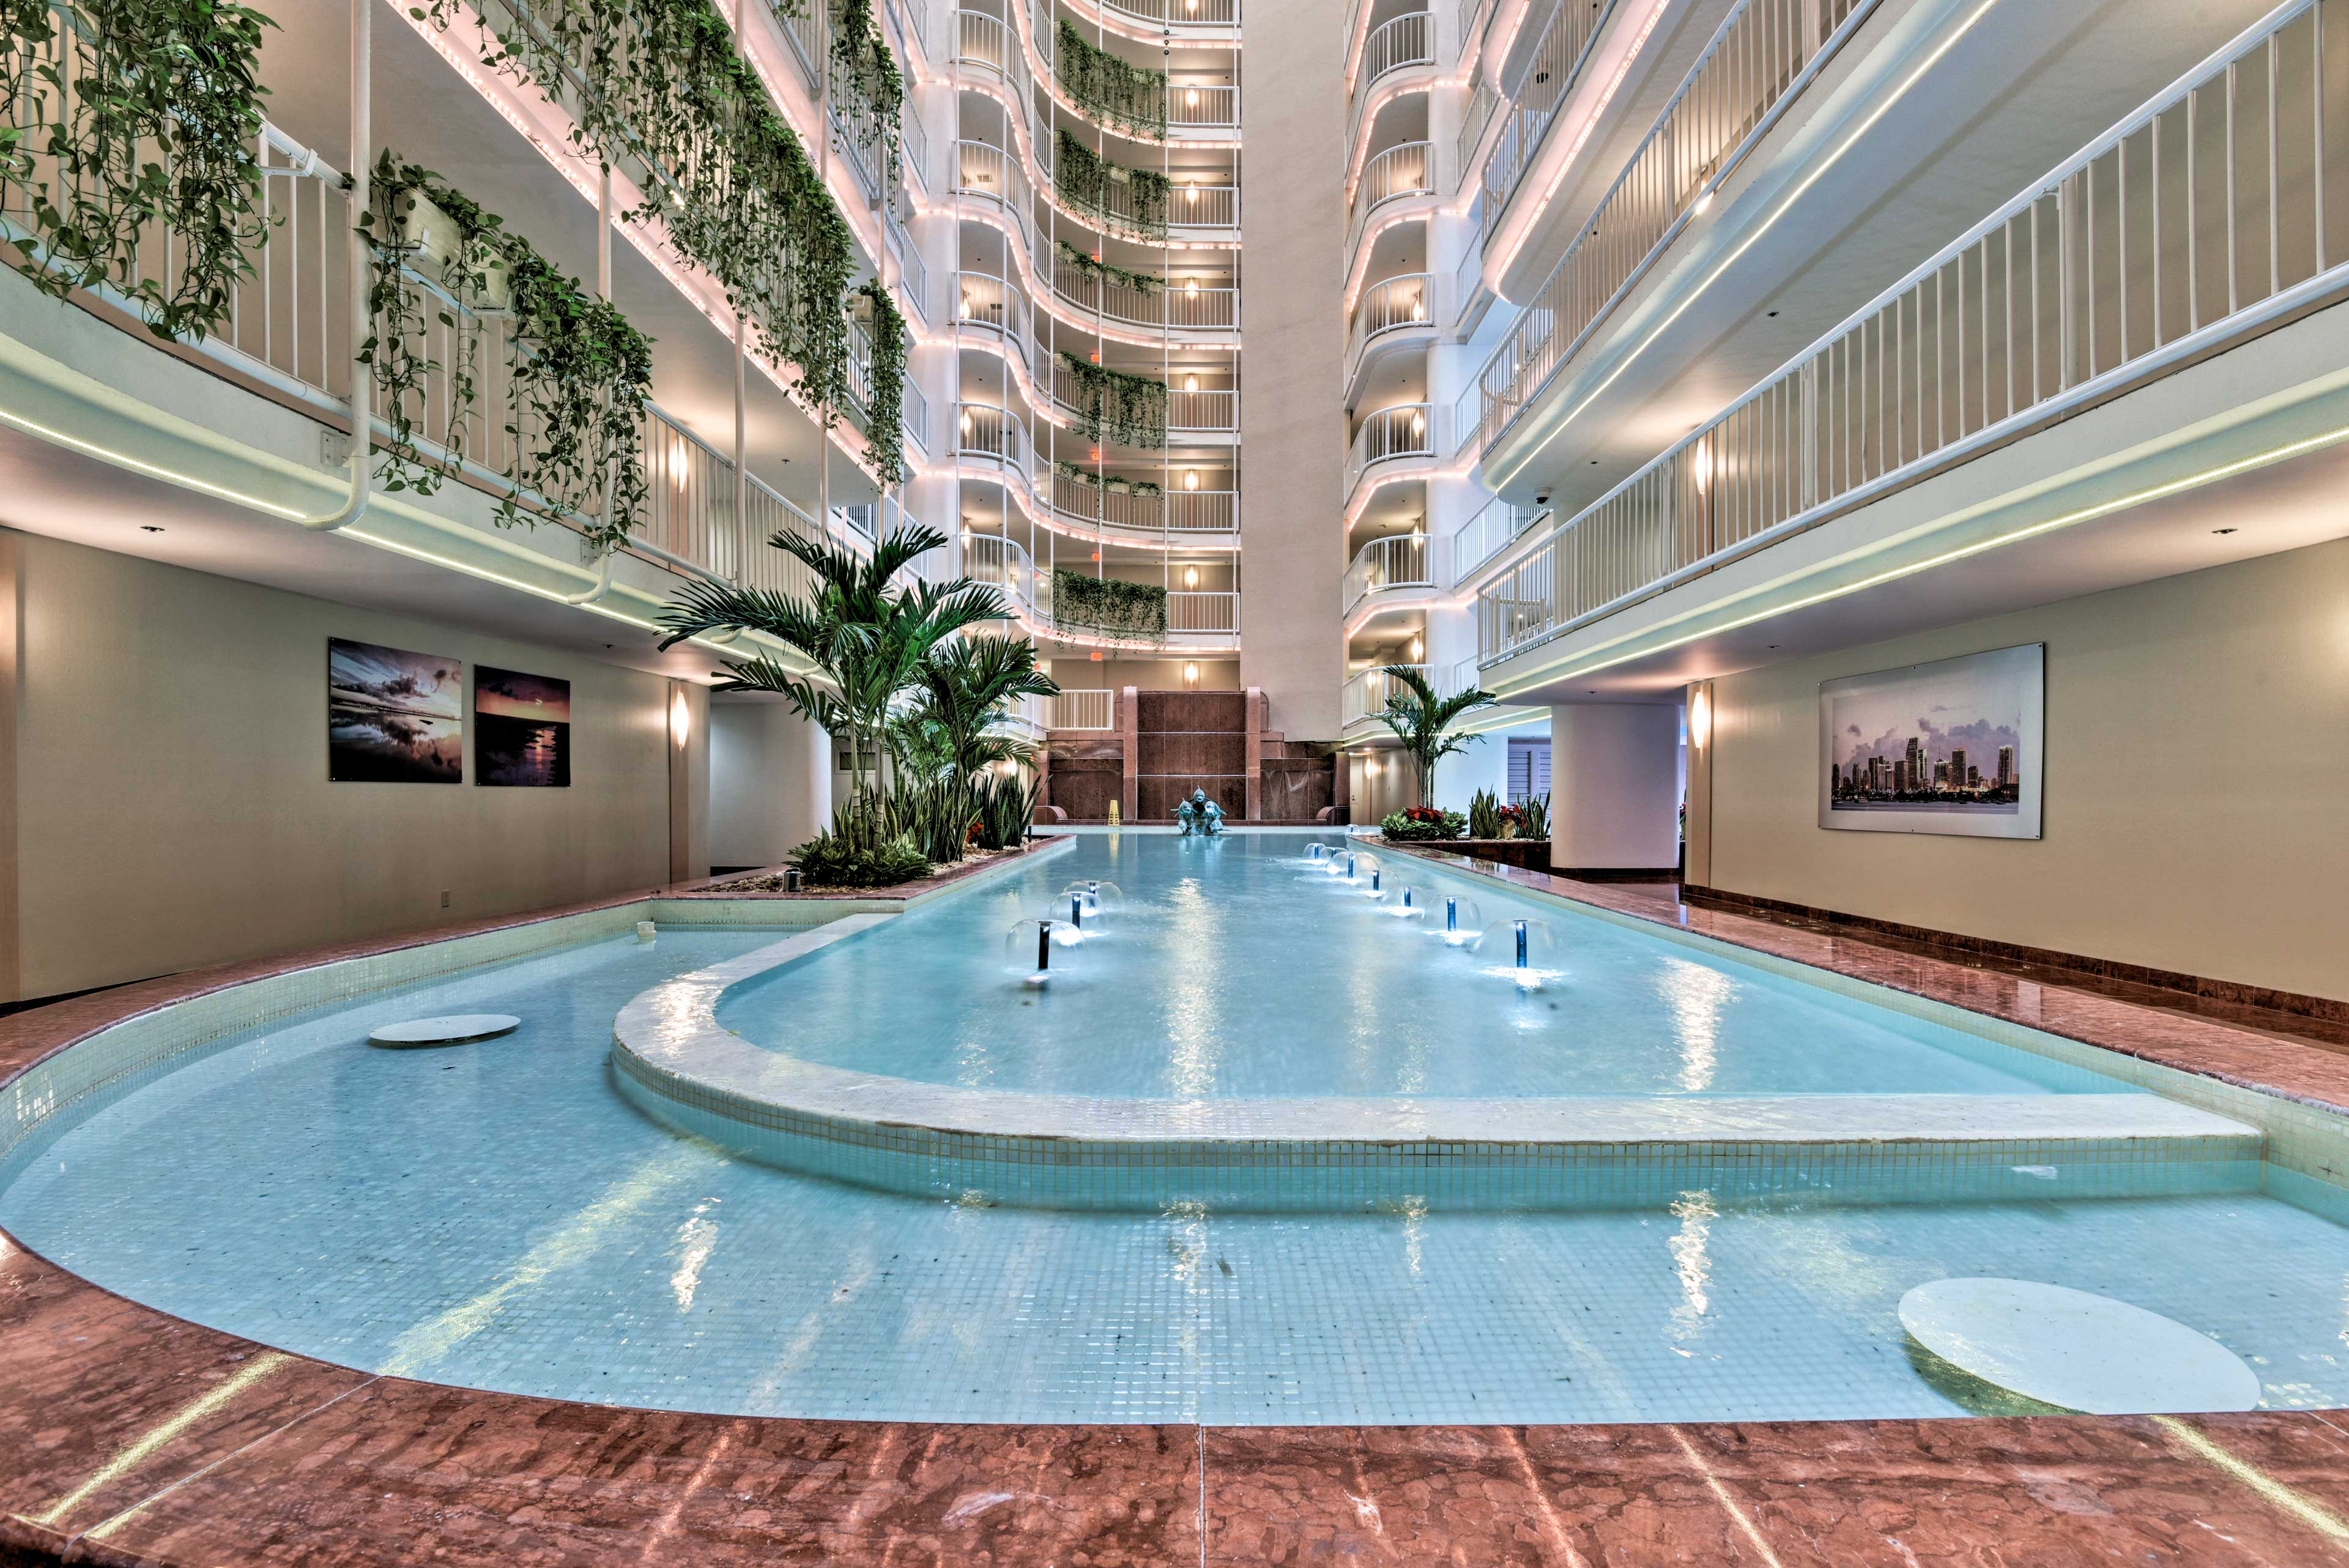 The Grand Doubletree offers a luxurious interior.